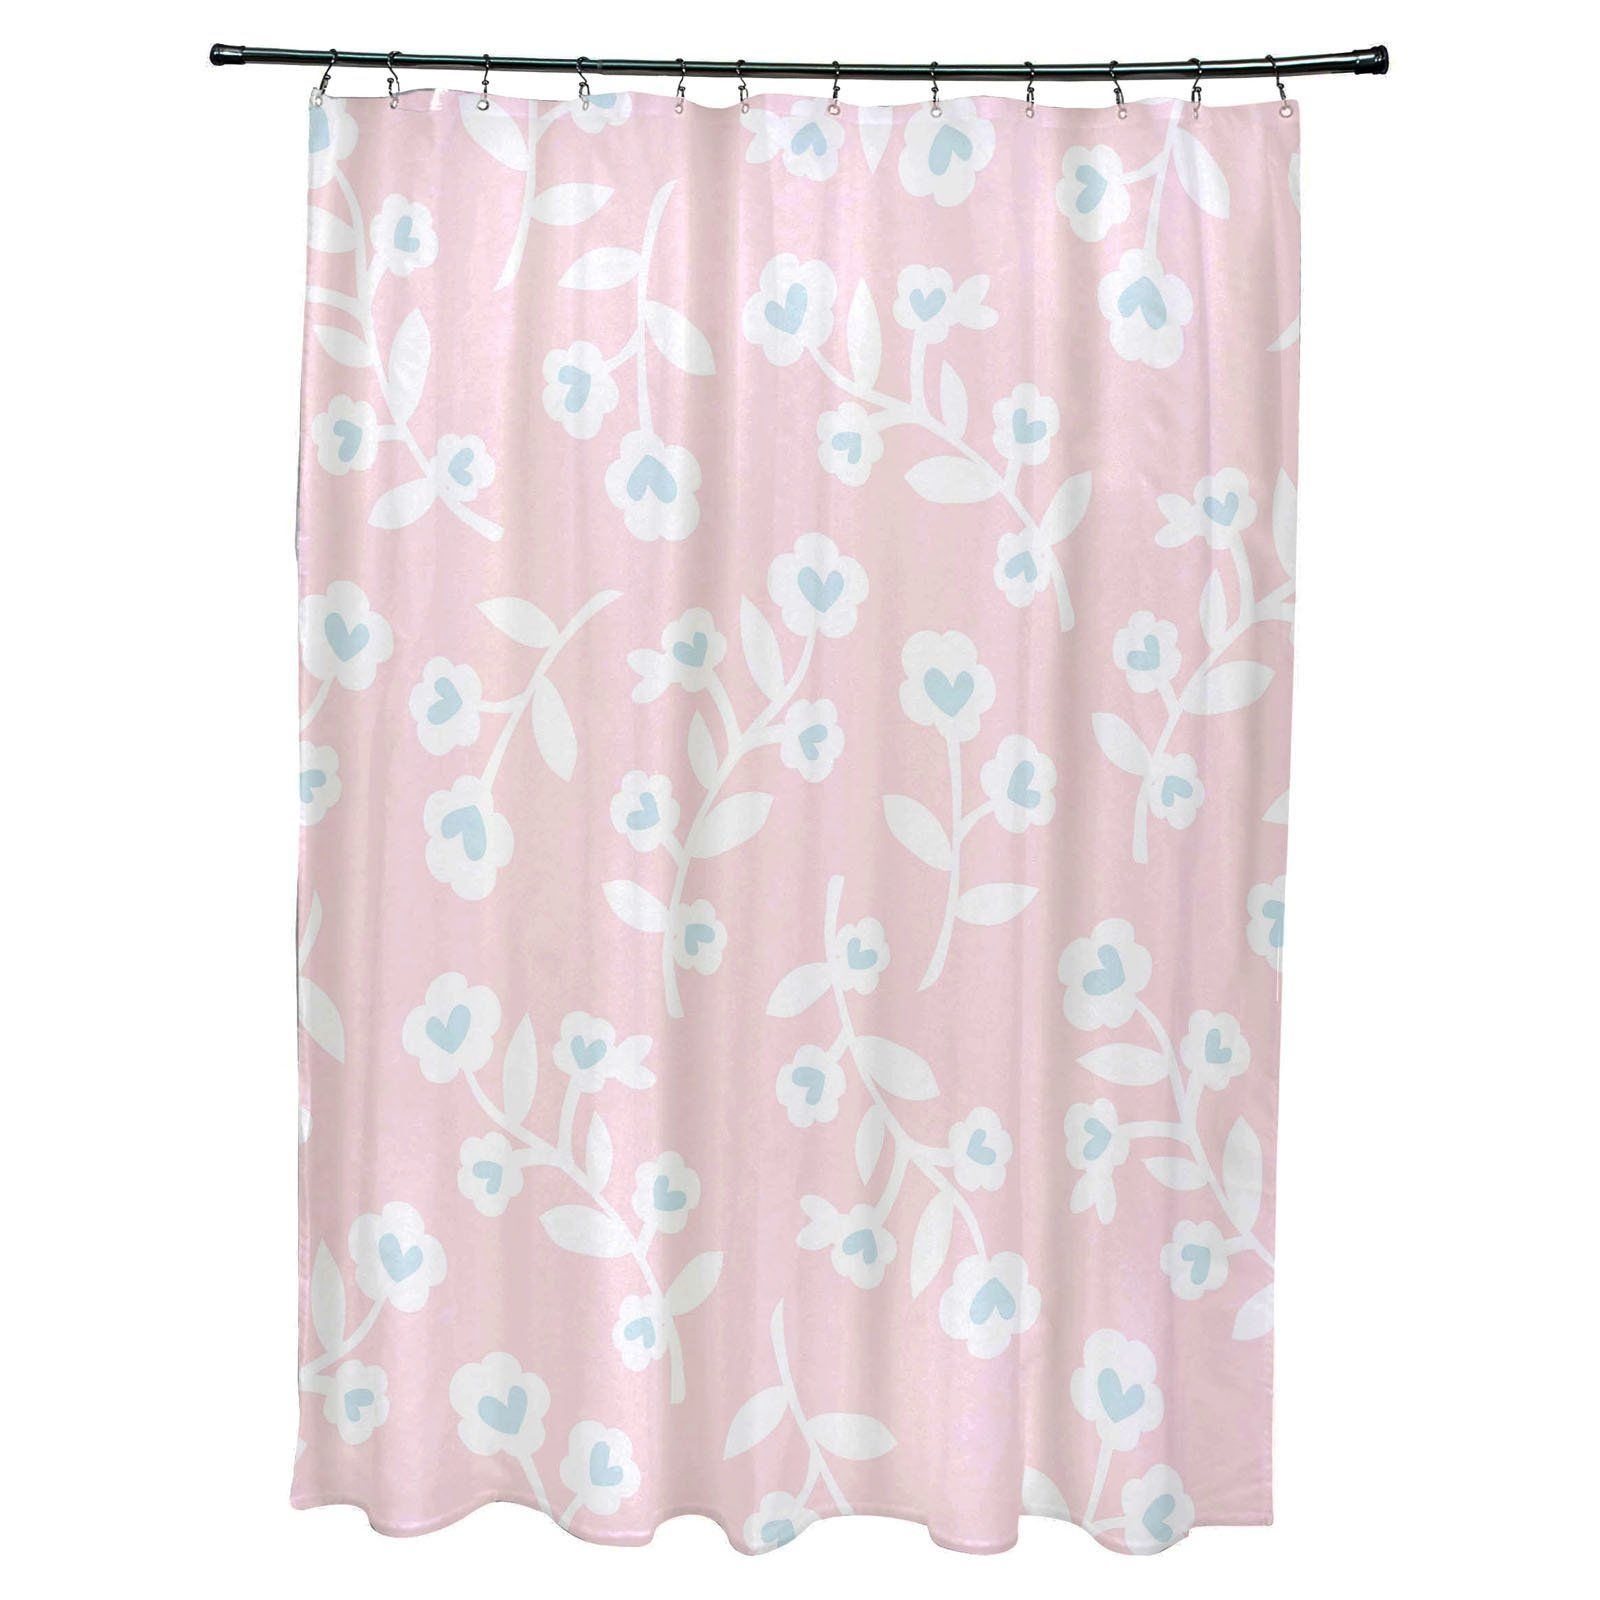 E By Design Valentines Polyester Shower Curtain Funky Shower